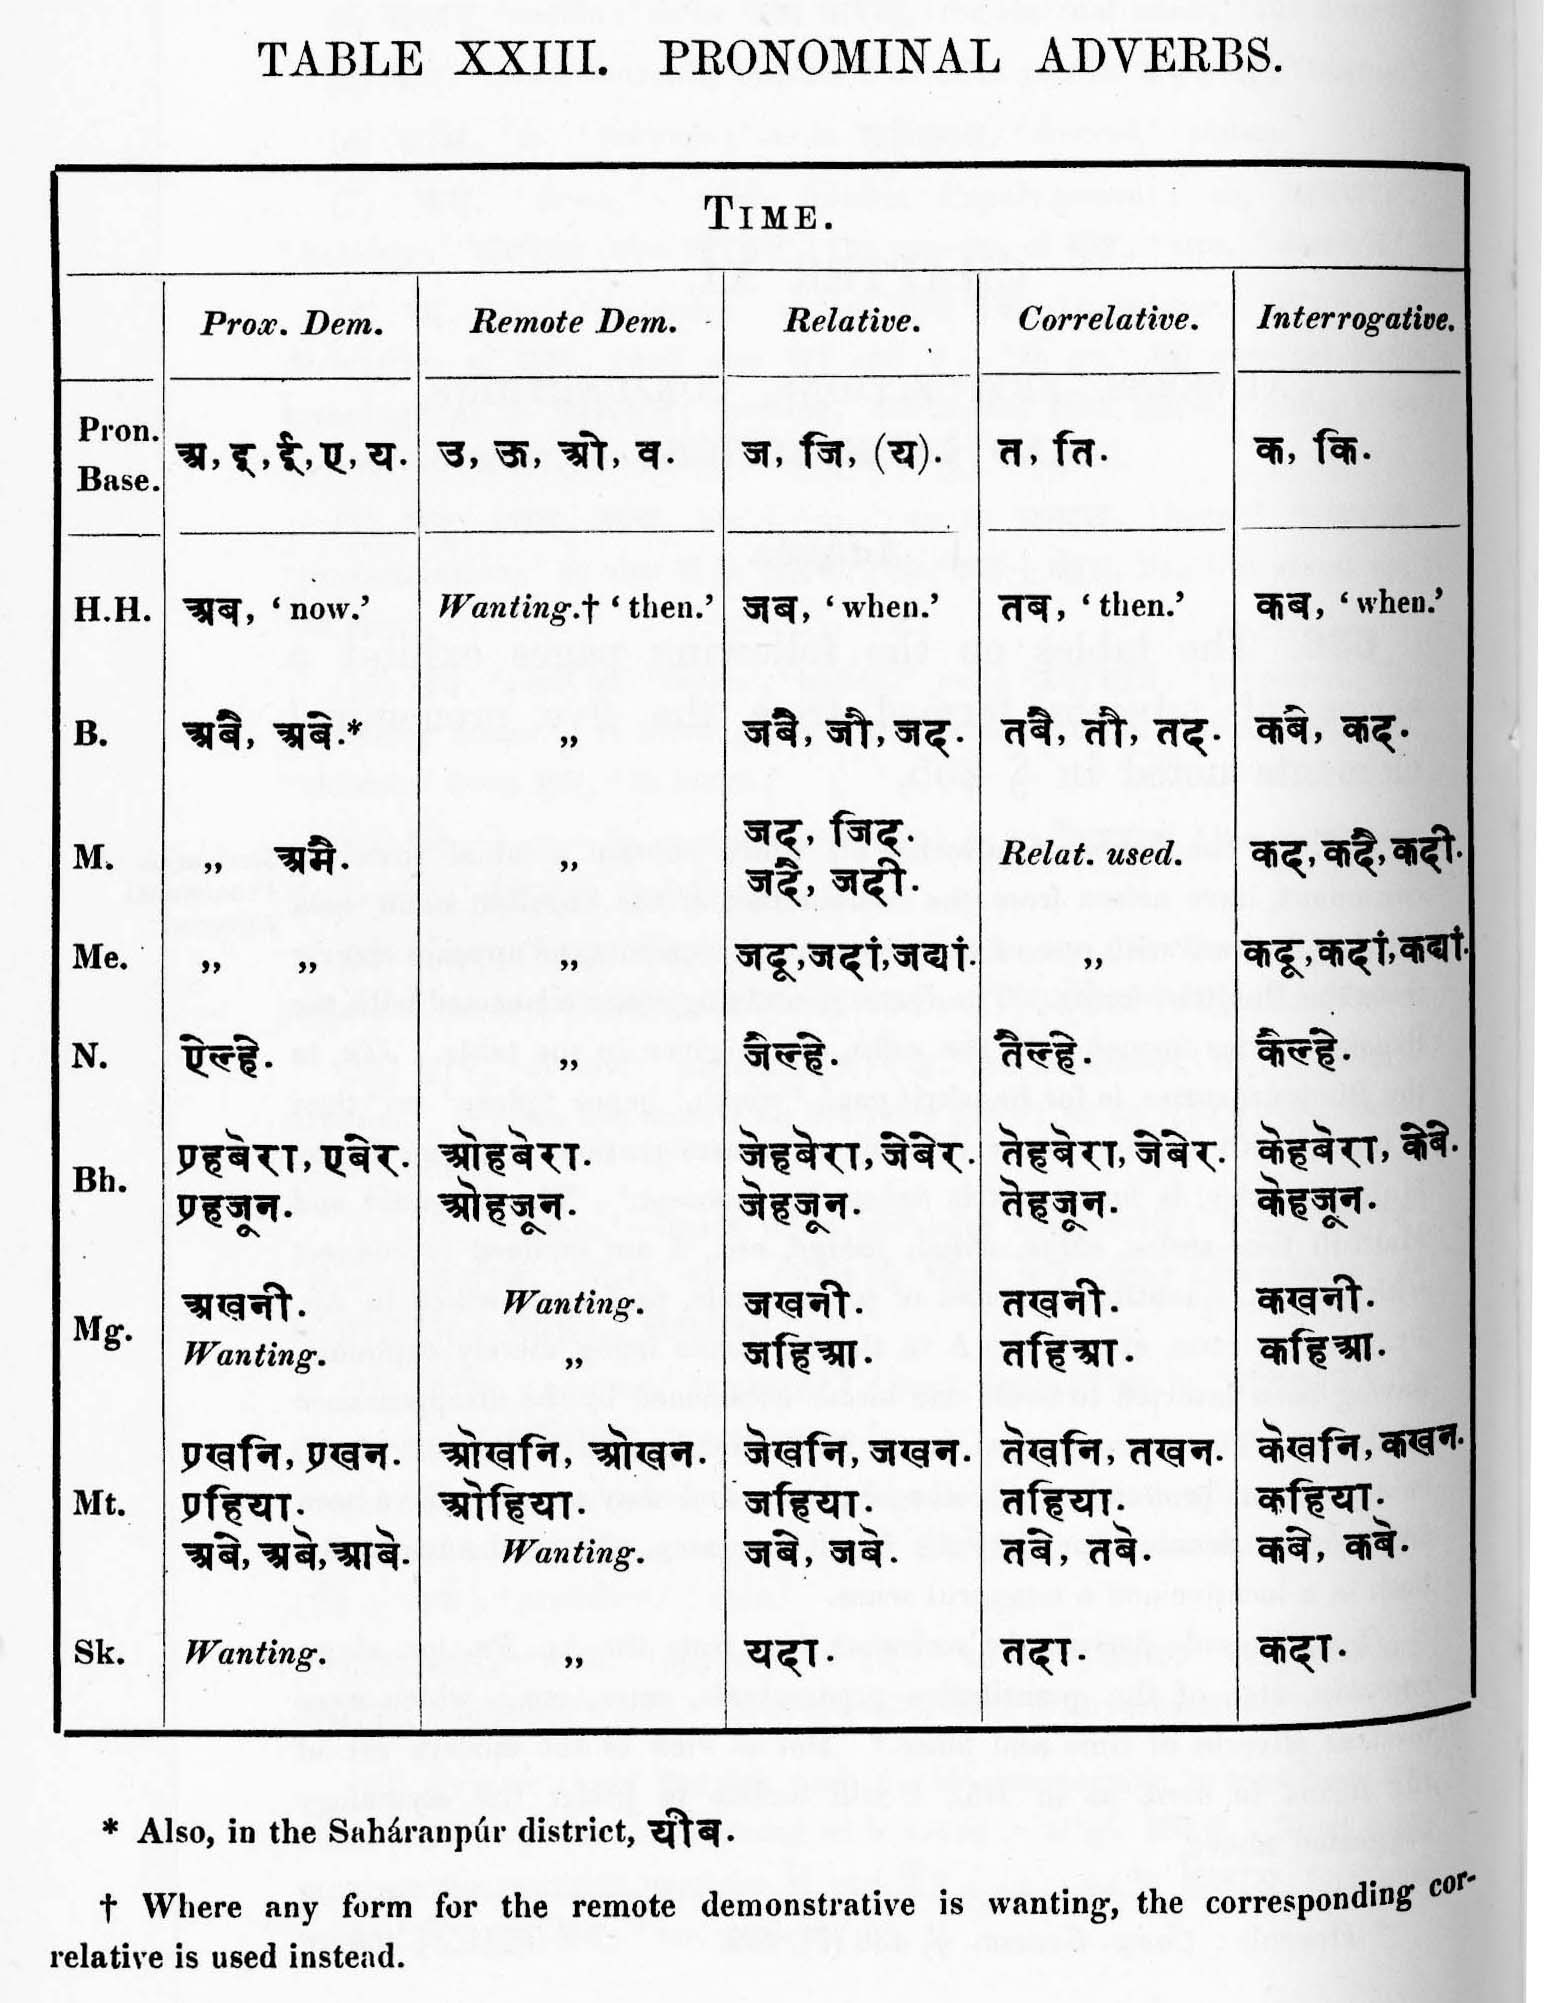 Excerpts from A Grammar of the Hindi Language (1938), by